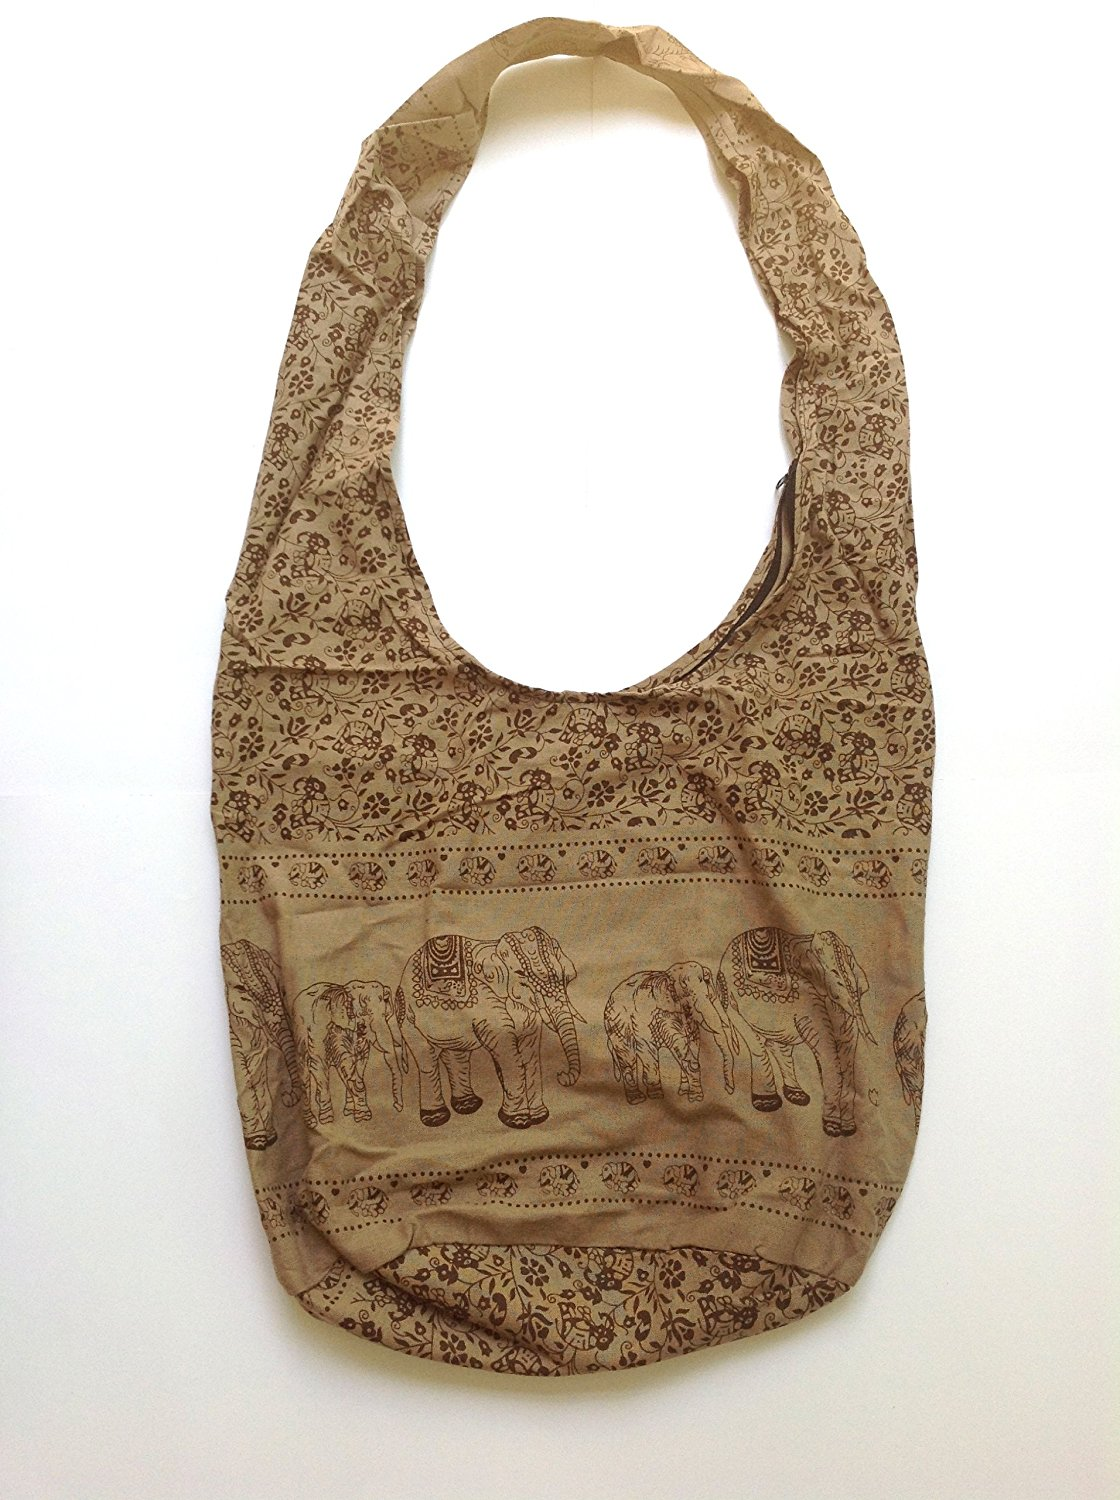 586c3c5a2a1 Big Handmade Thai Cotton Pouch Crossbody Sling Hippie Hobo Postman Shoulder  Bag Thai Elephant (Brown